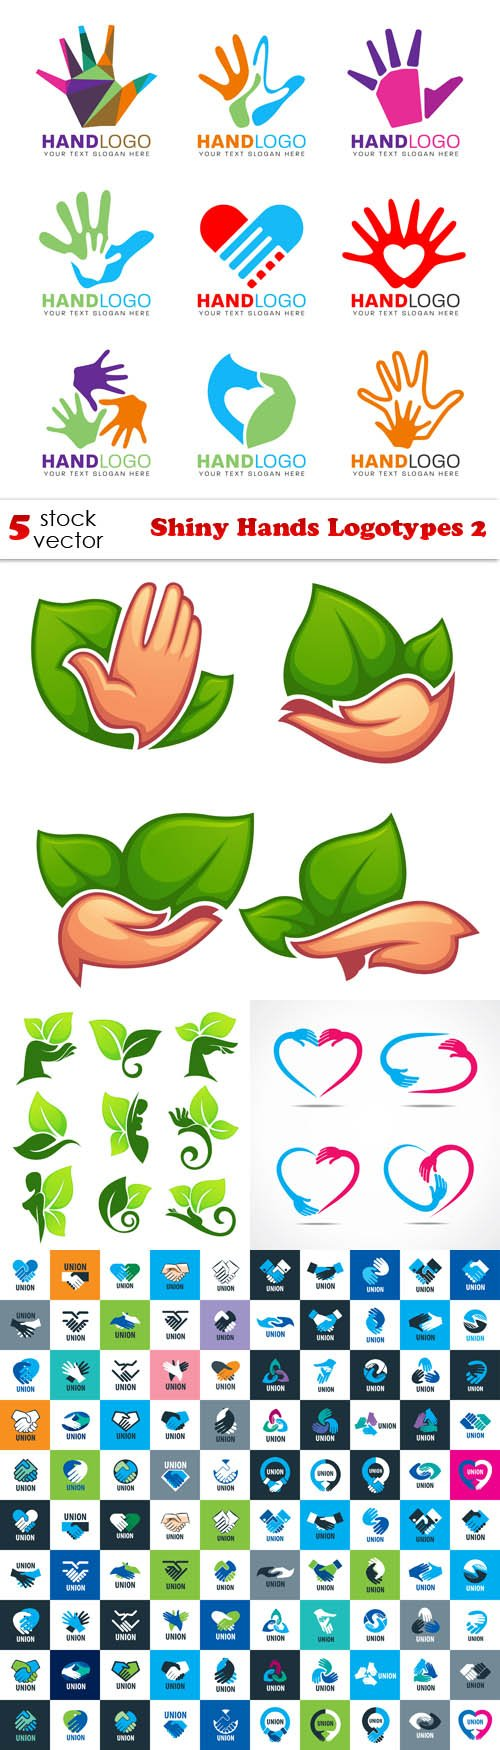 Vectors - Shiny Hands Logotypes 2